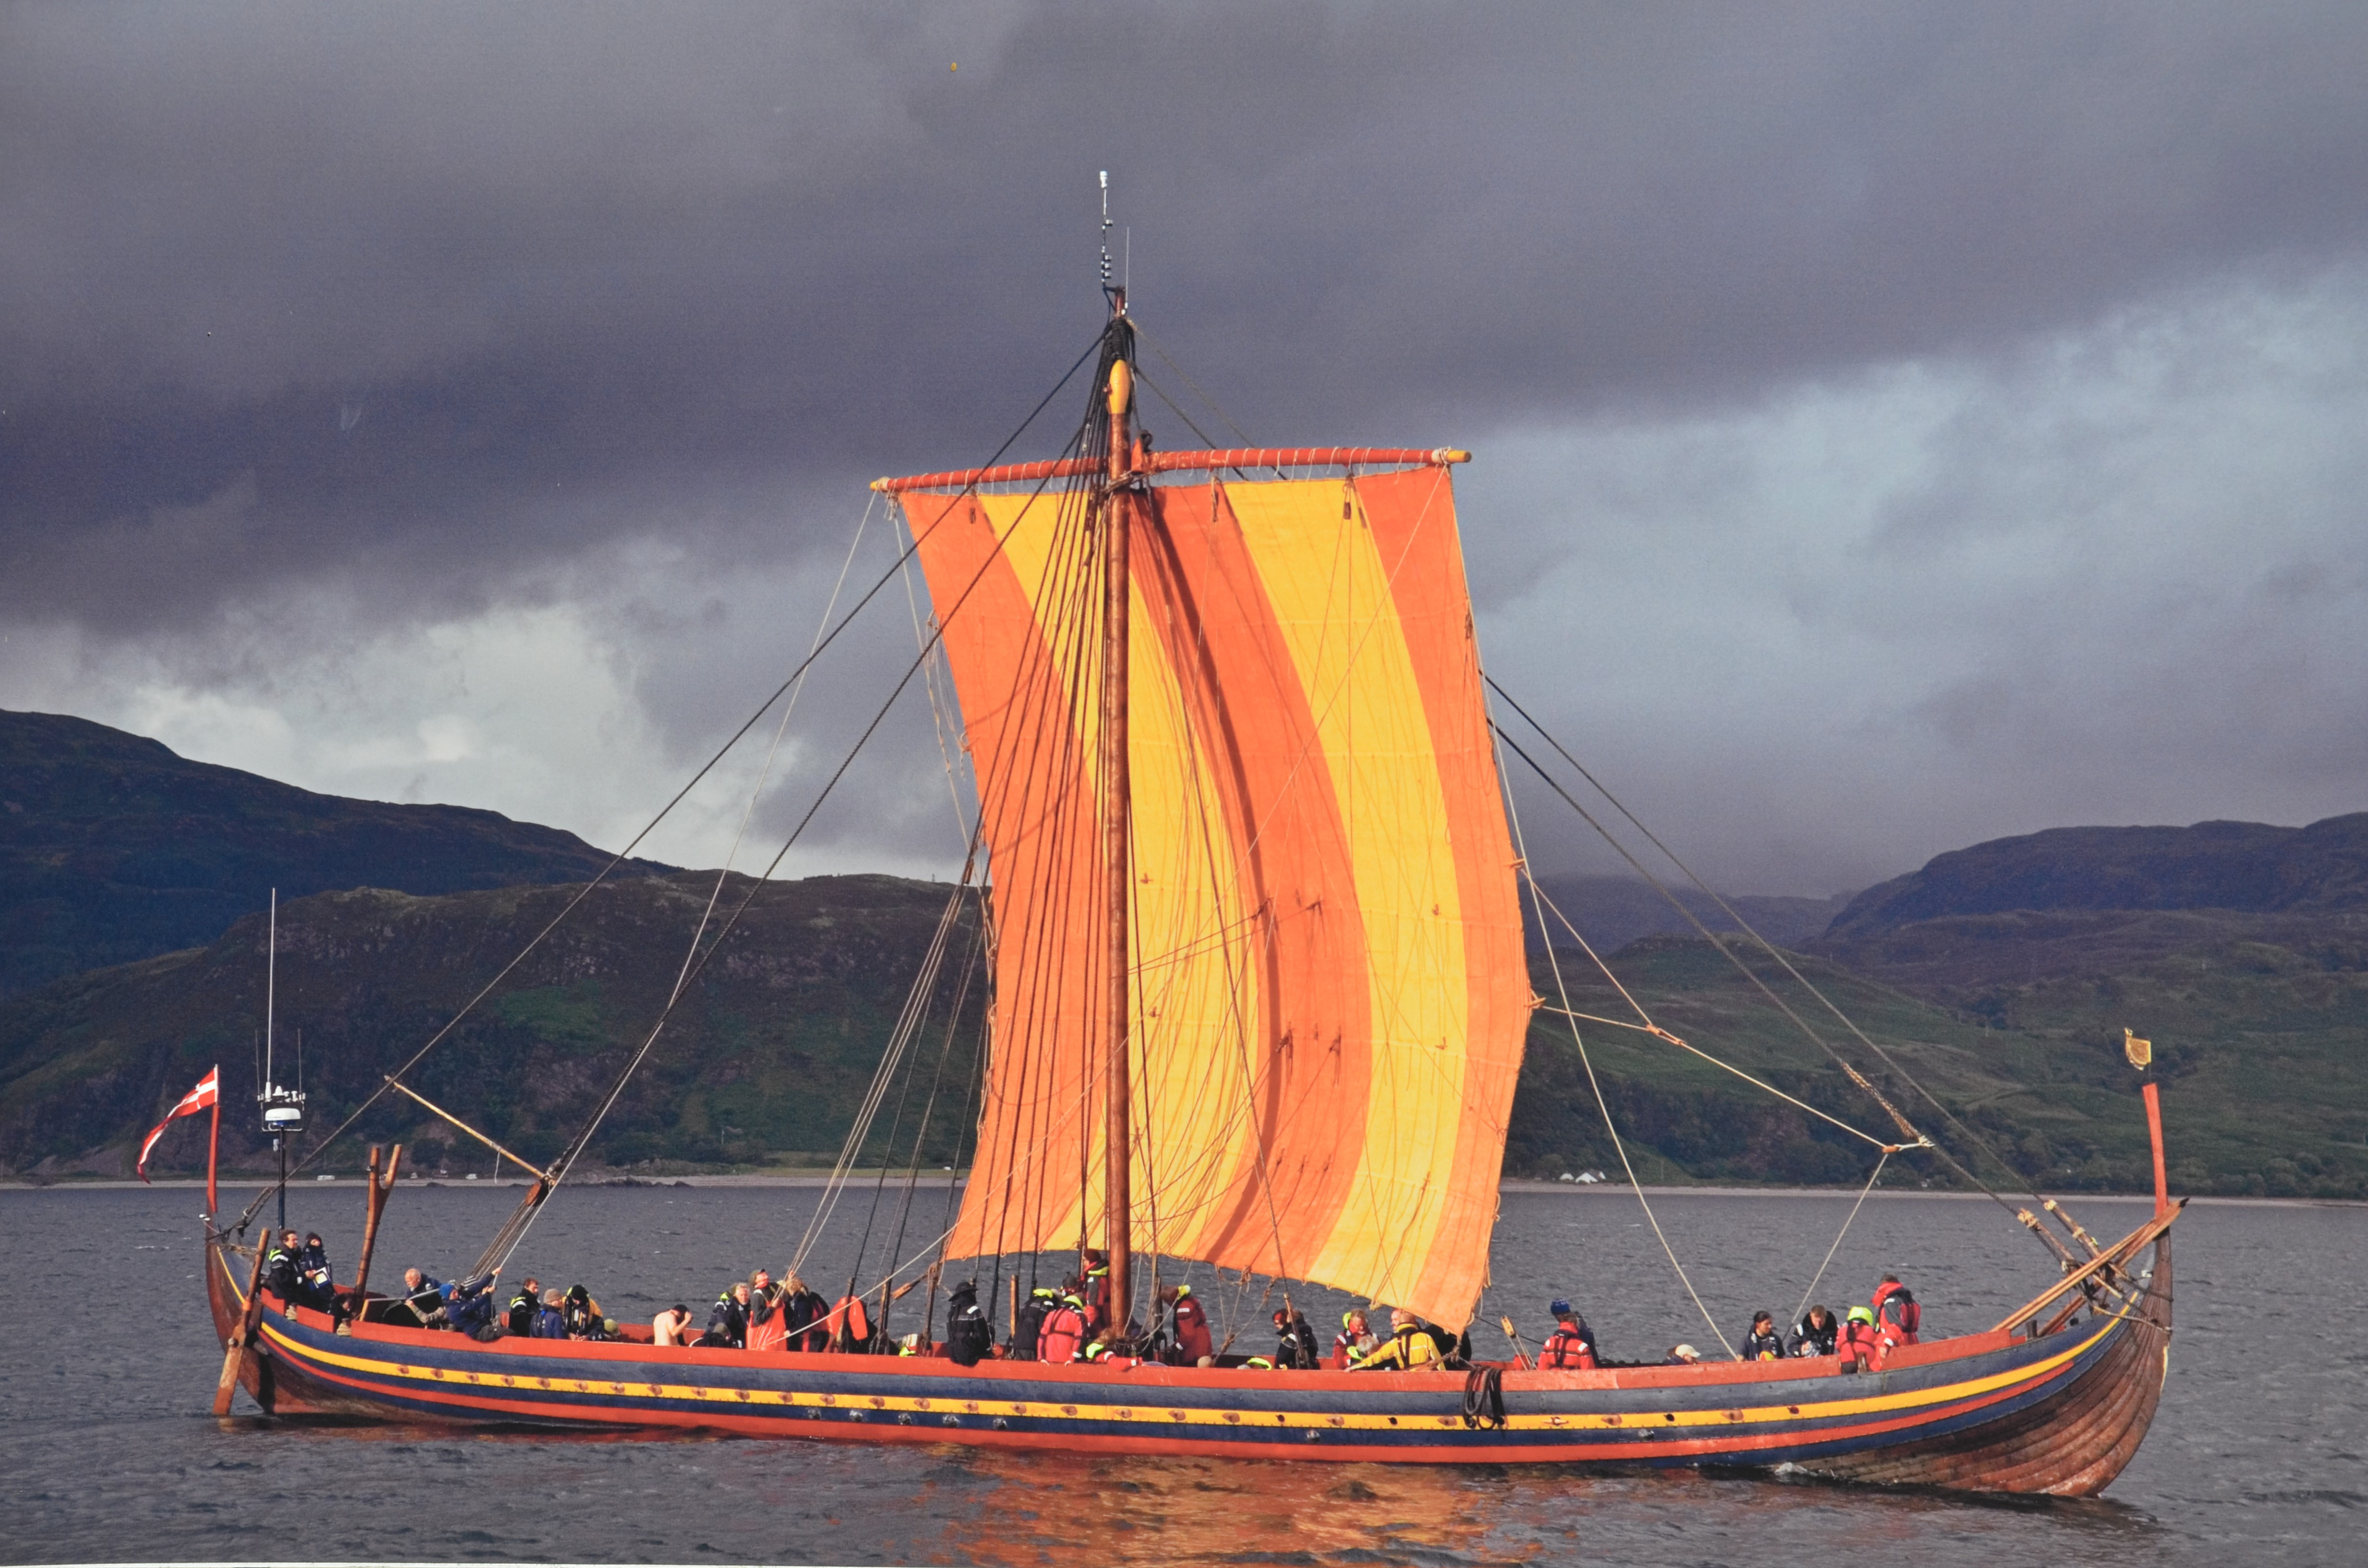 first voyage of a reconstructed Viking ship. They discovered the original remains at the bottom of the bay in Roskilde Denmark and then when they examined the tree ring data, they found out it had been made from trees growing near Dublin. So they made a reconstruction to sail back to Ireland